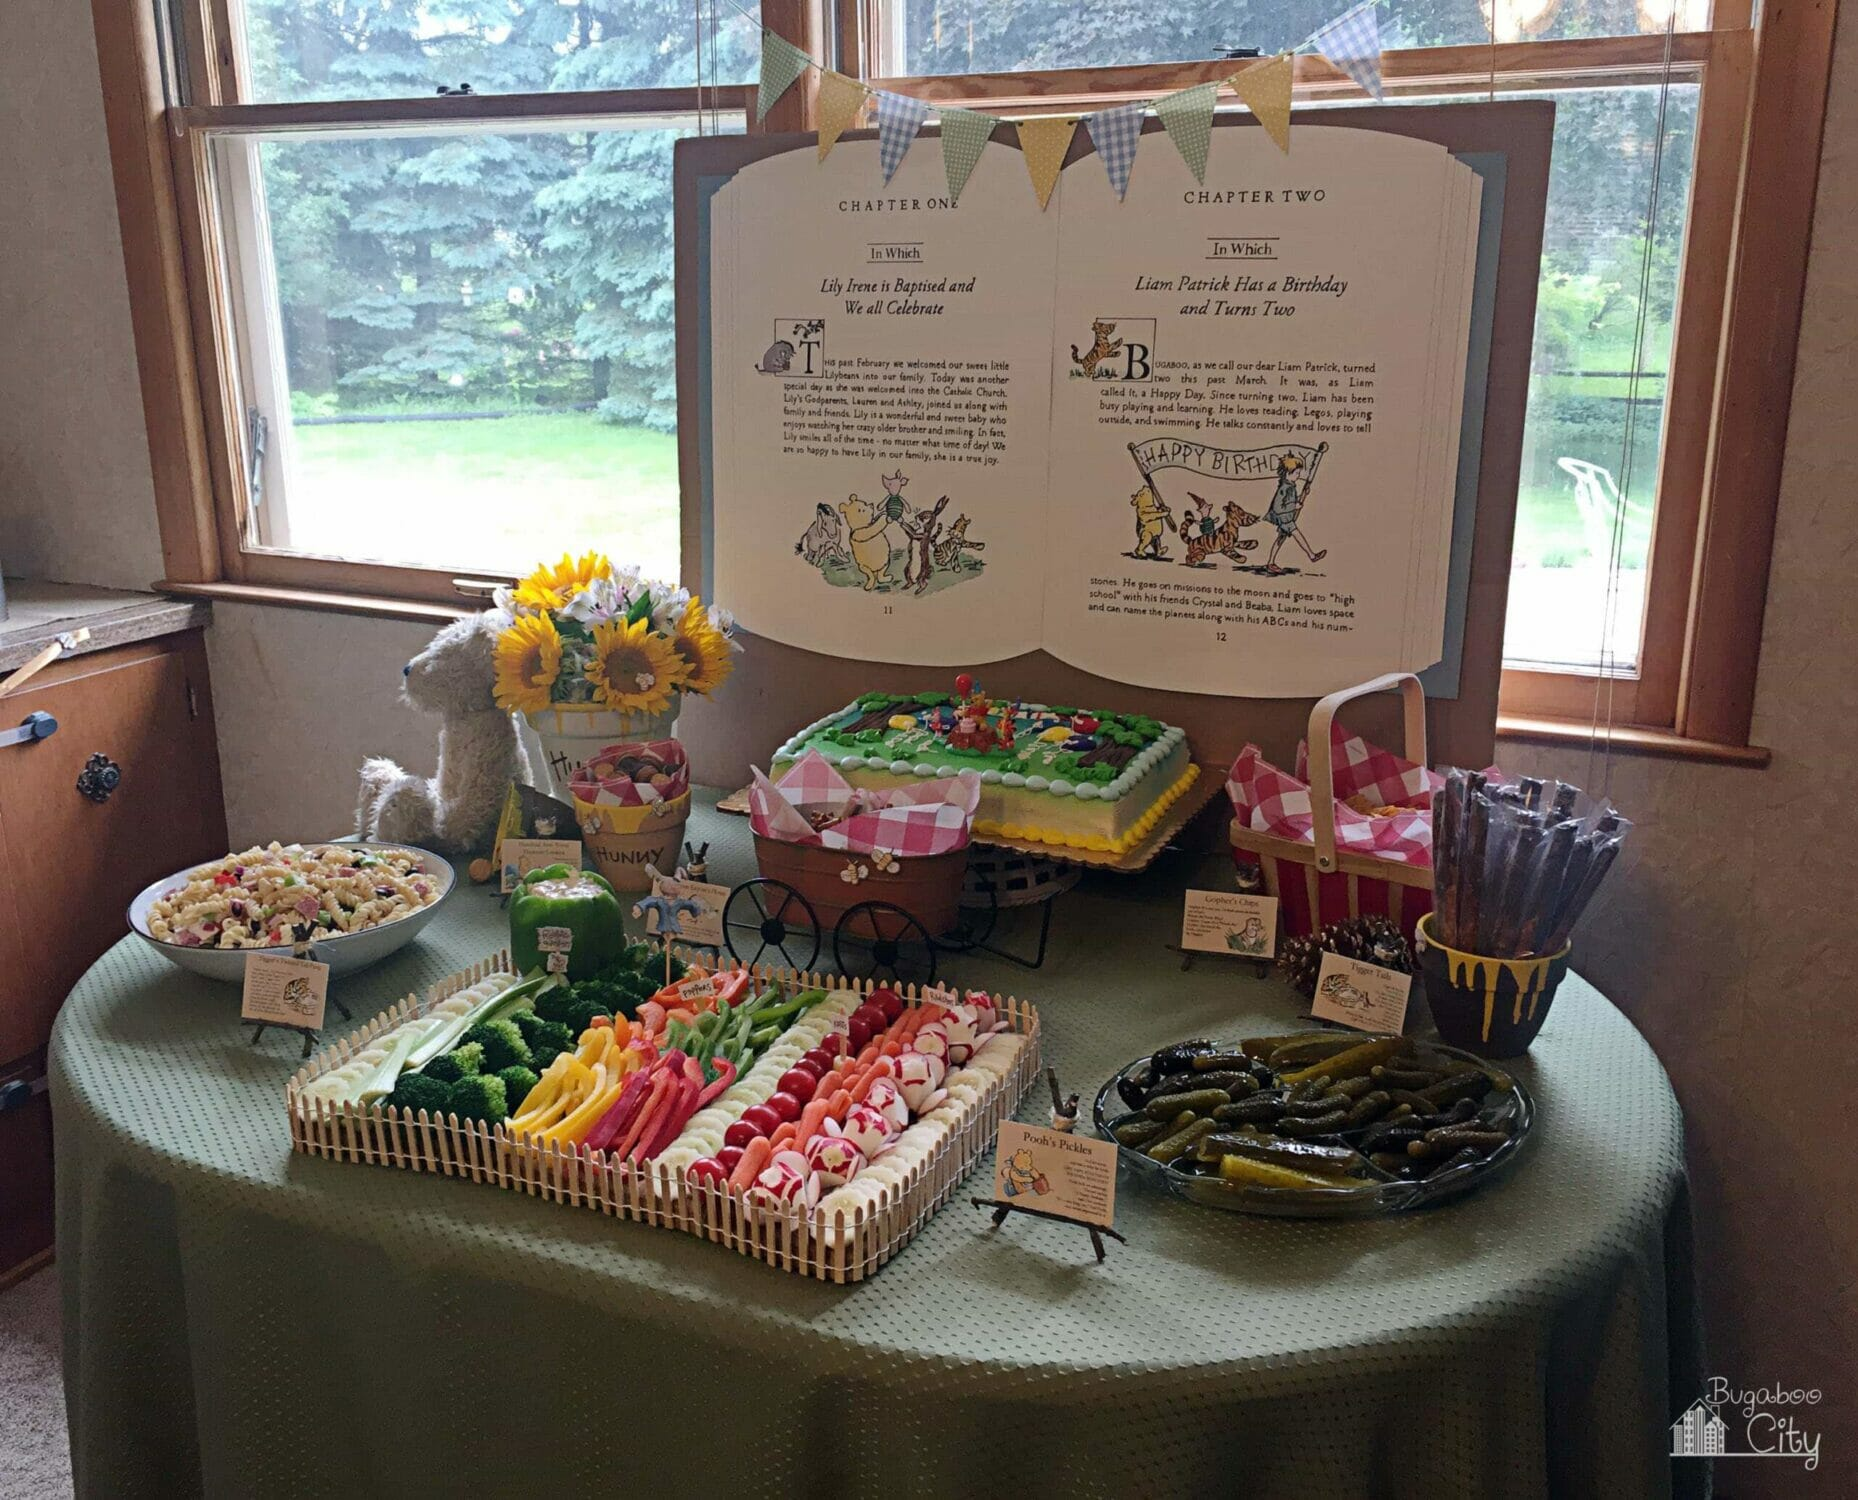 Winnie the Pooh-themed food table.